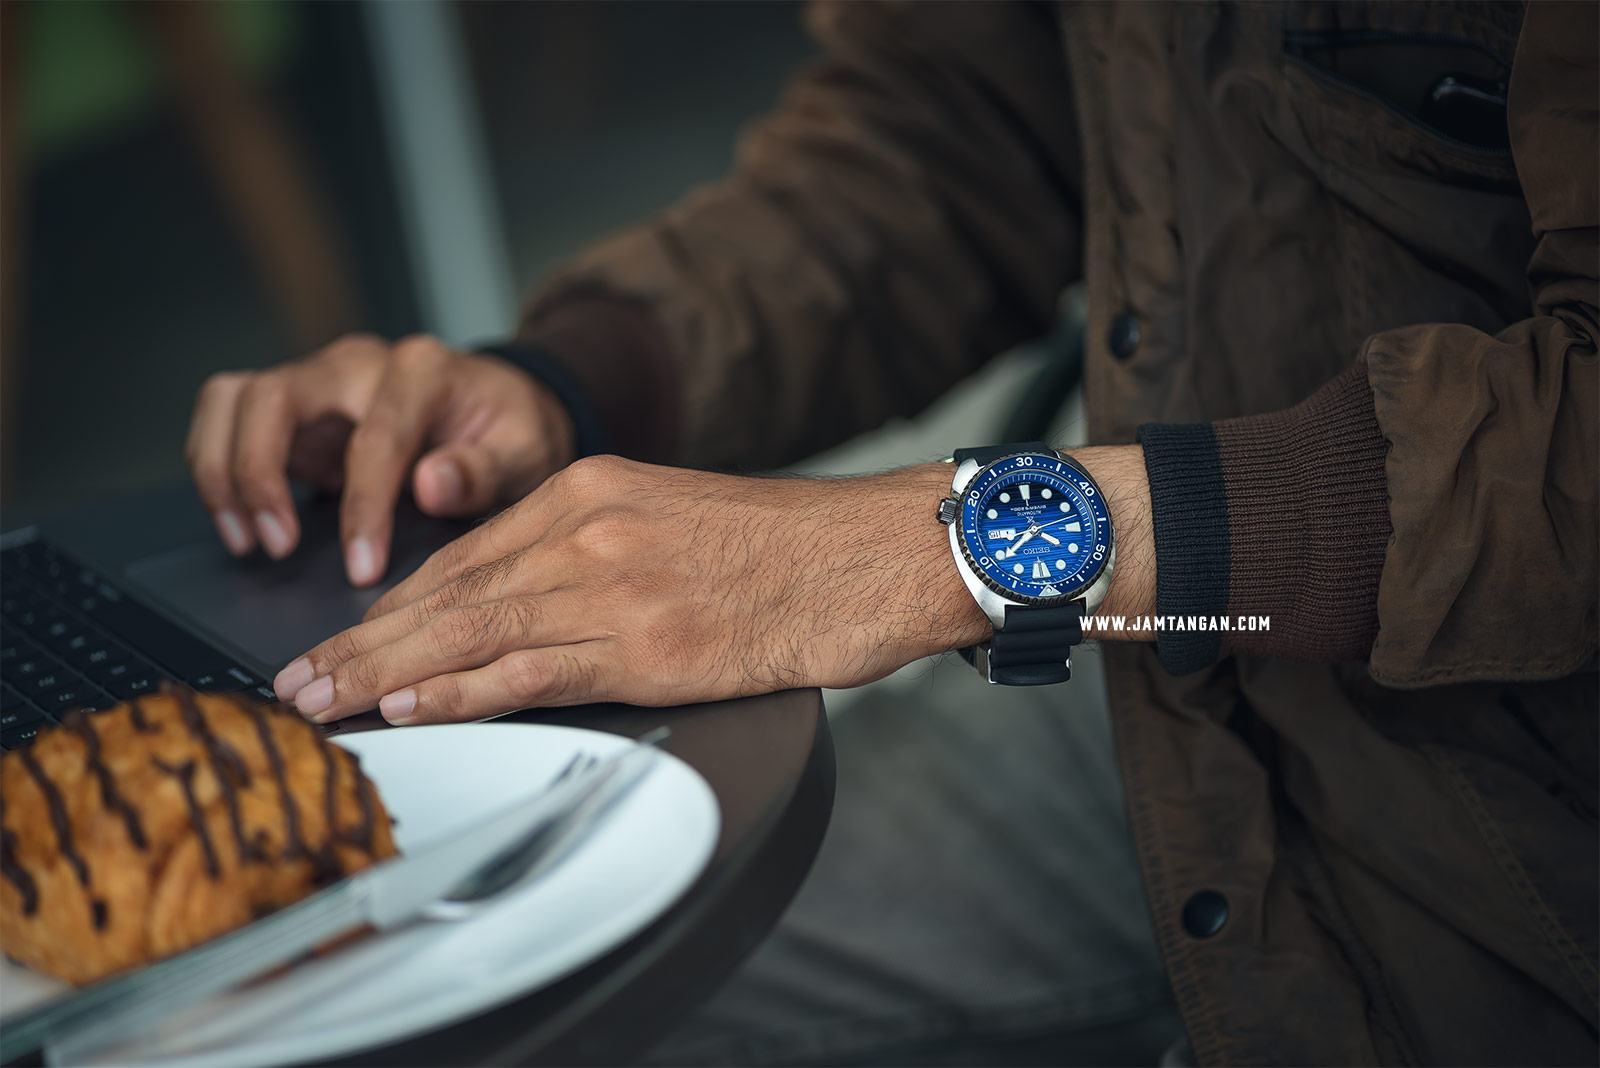 Seiko Prospex Turtle Save The Ocean SRPC91K1 Auto Divers 200M Black Rubber Strap SPECIAL EDITION Machtwatch